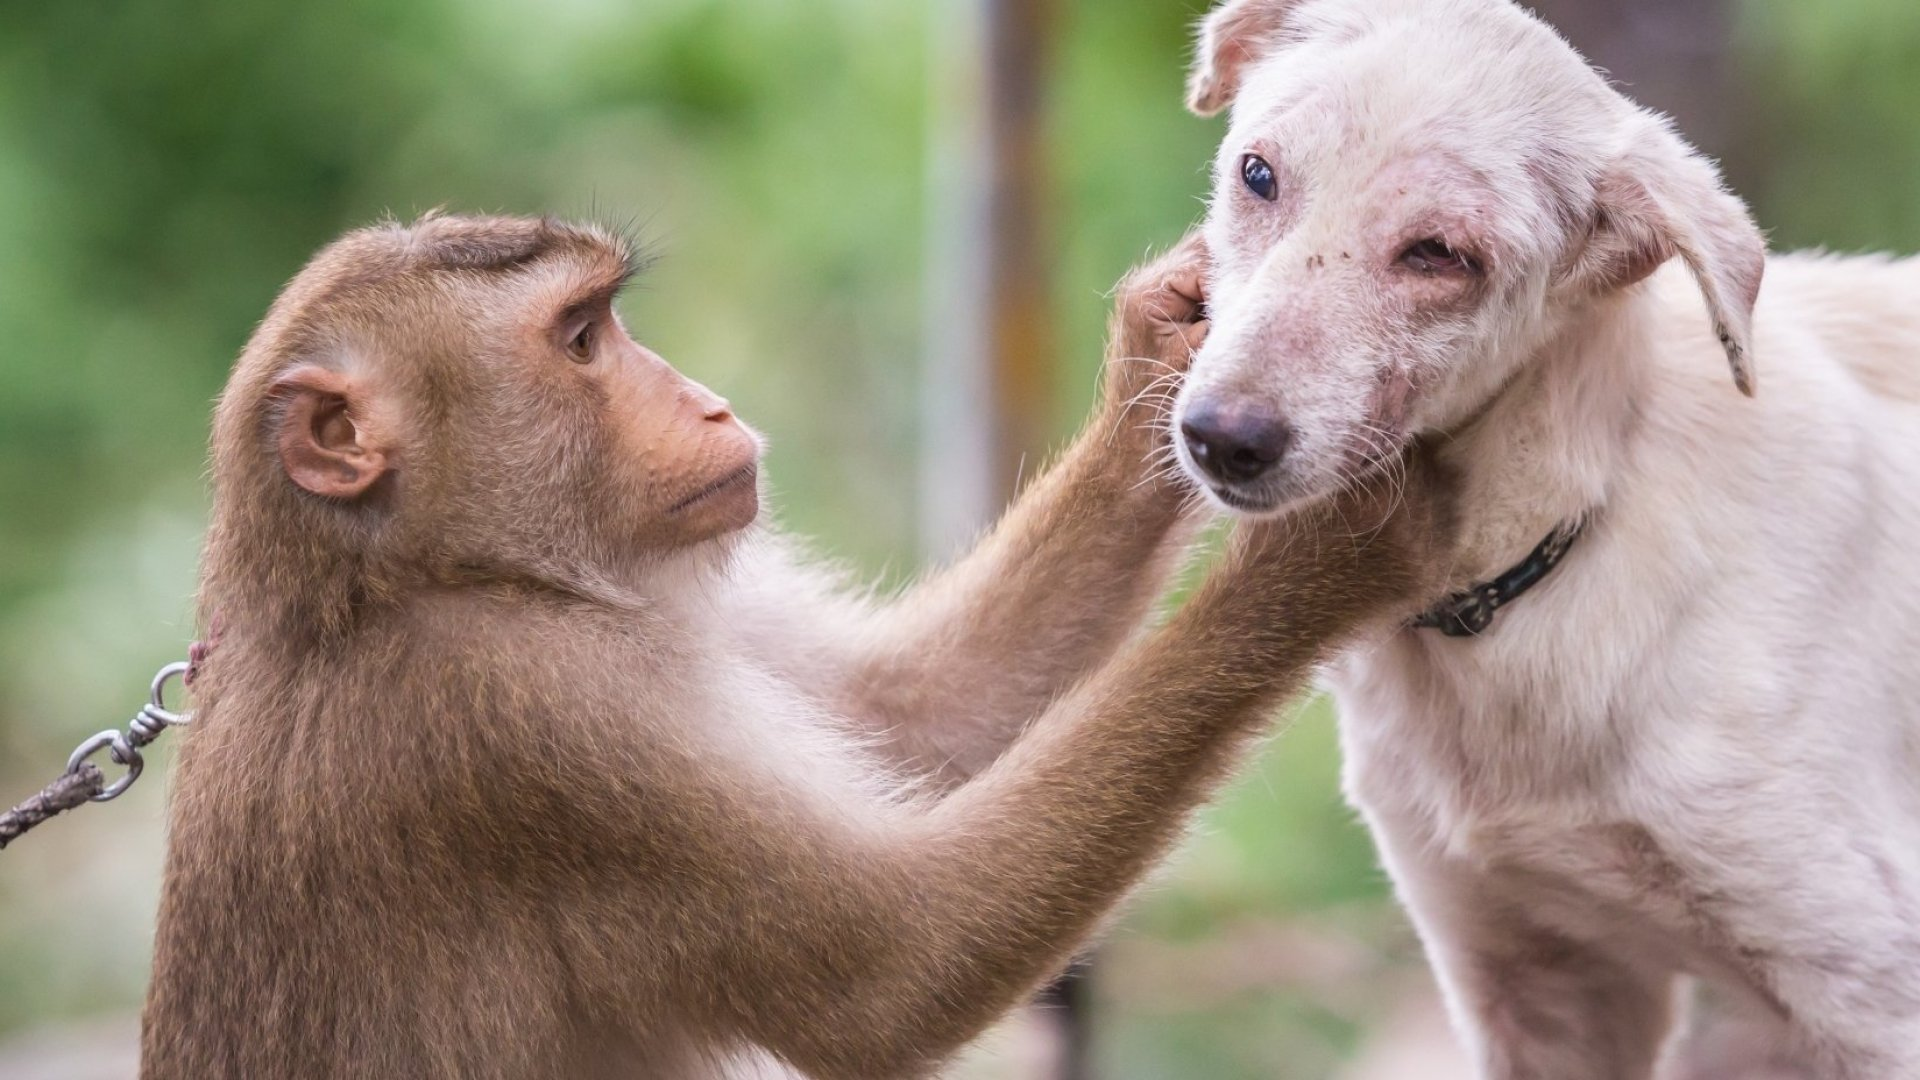 Emotions are complicated among us animals.